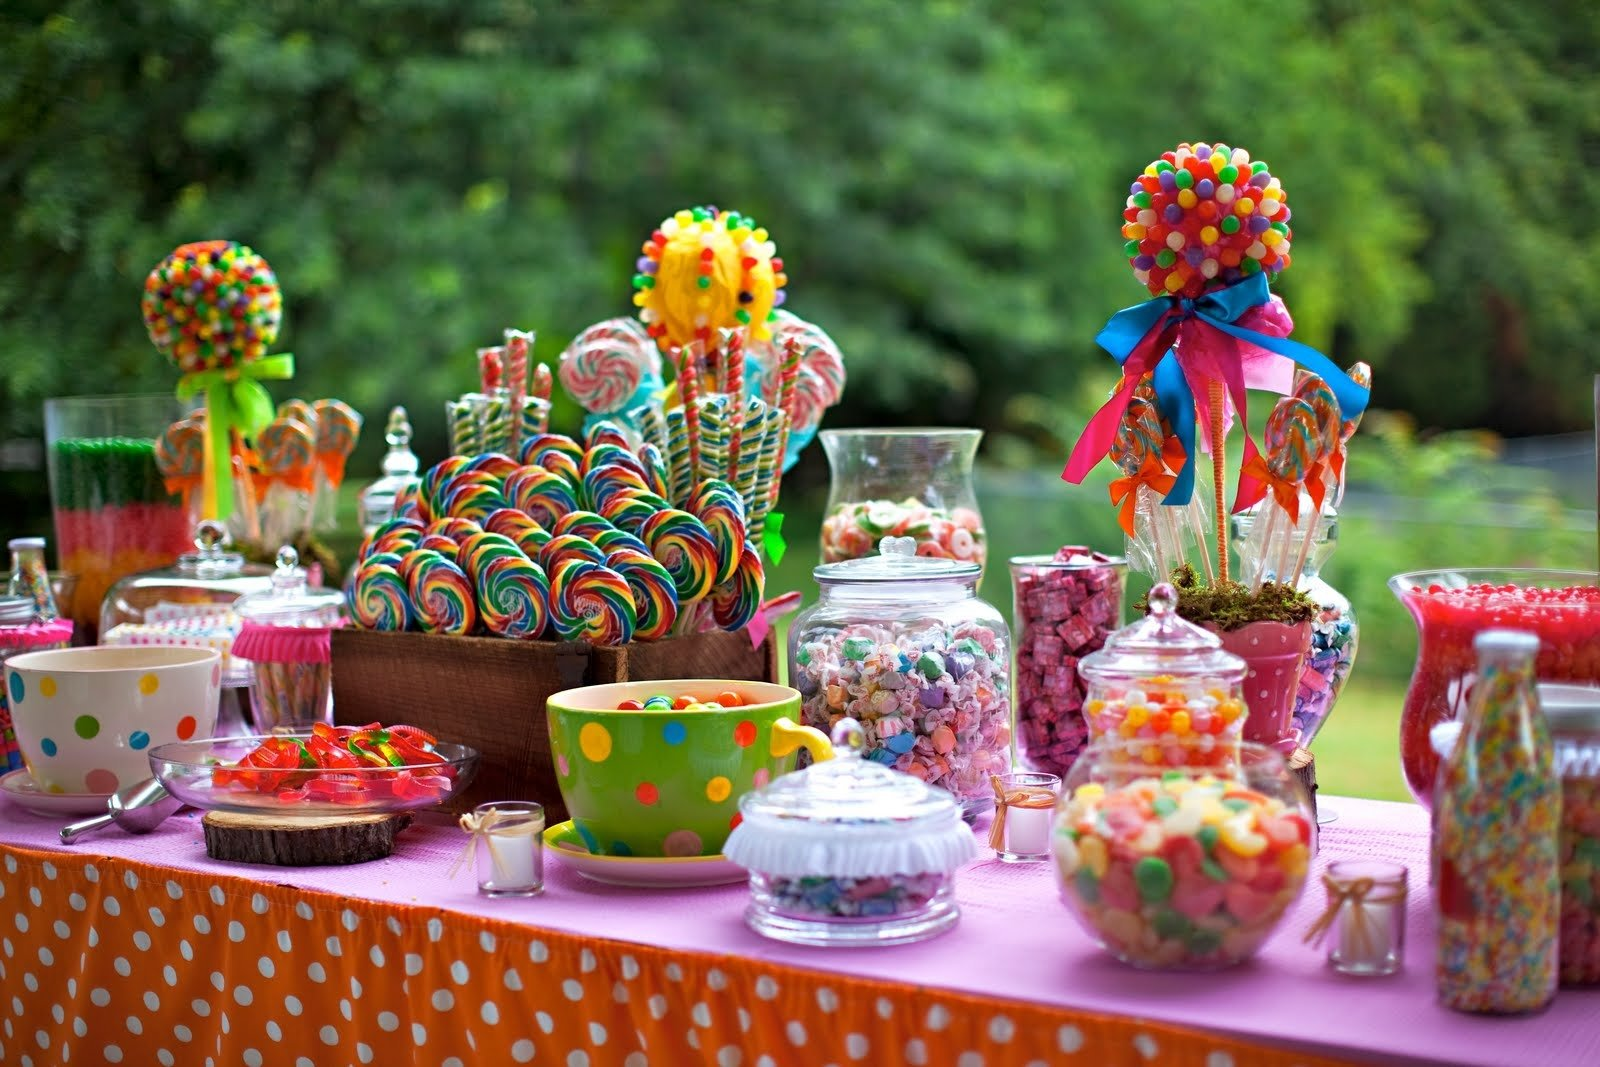 10 Famous Candy Themed Birthday Party Ideas best ideas candyland decorations interior and furnitures 5th